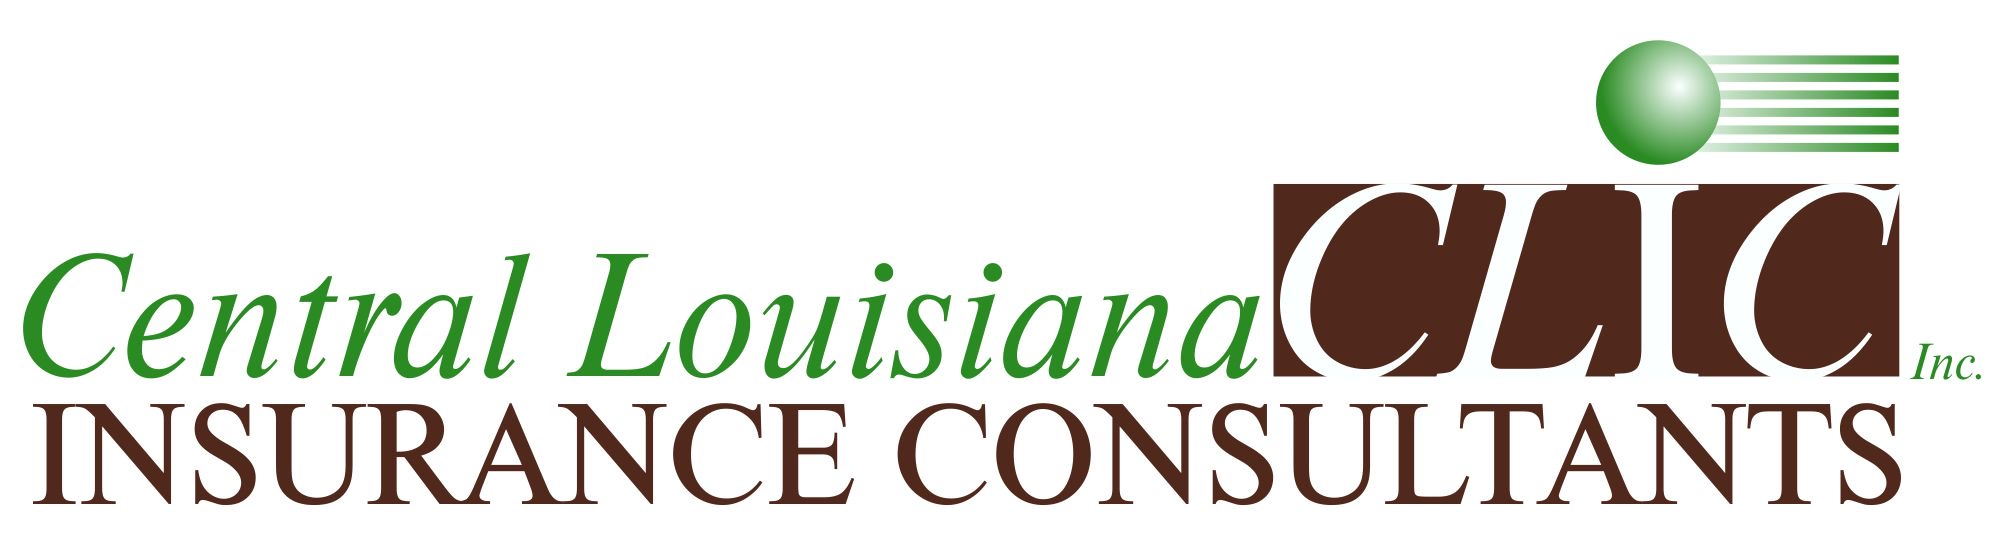 Central Louisiana Insurance Consultants